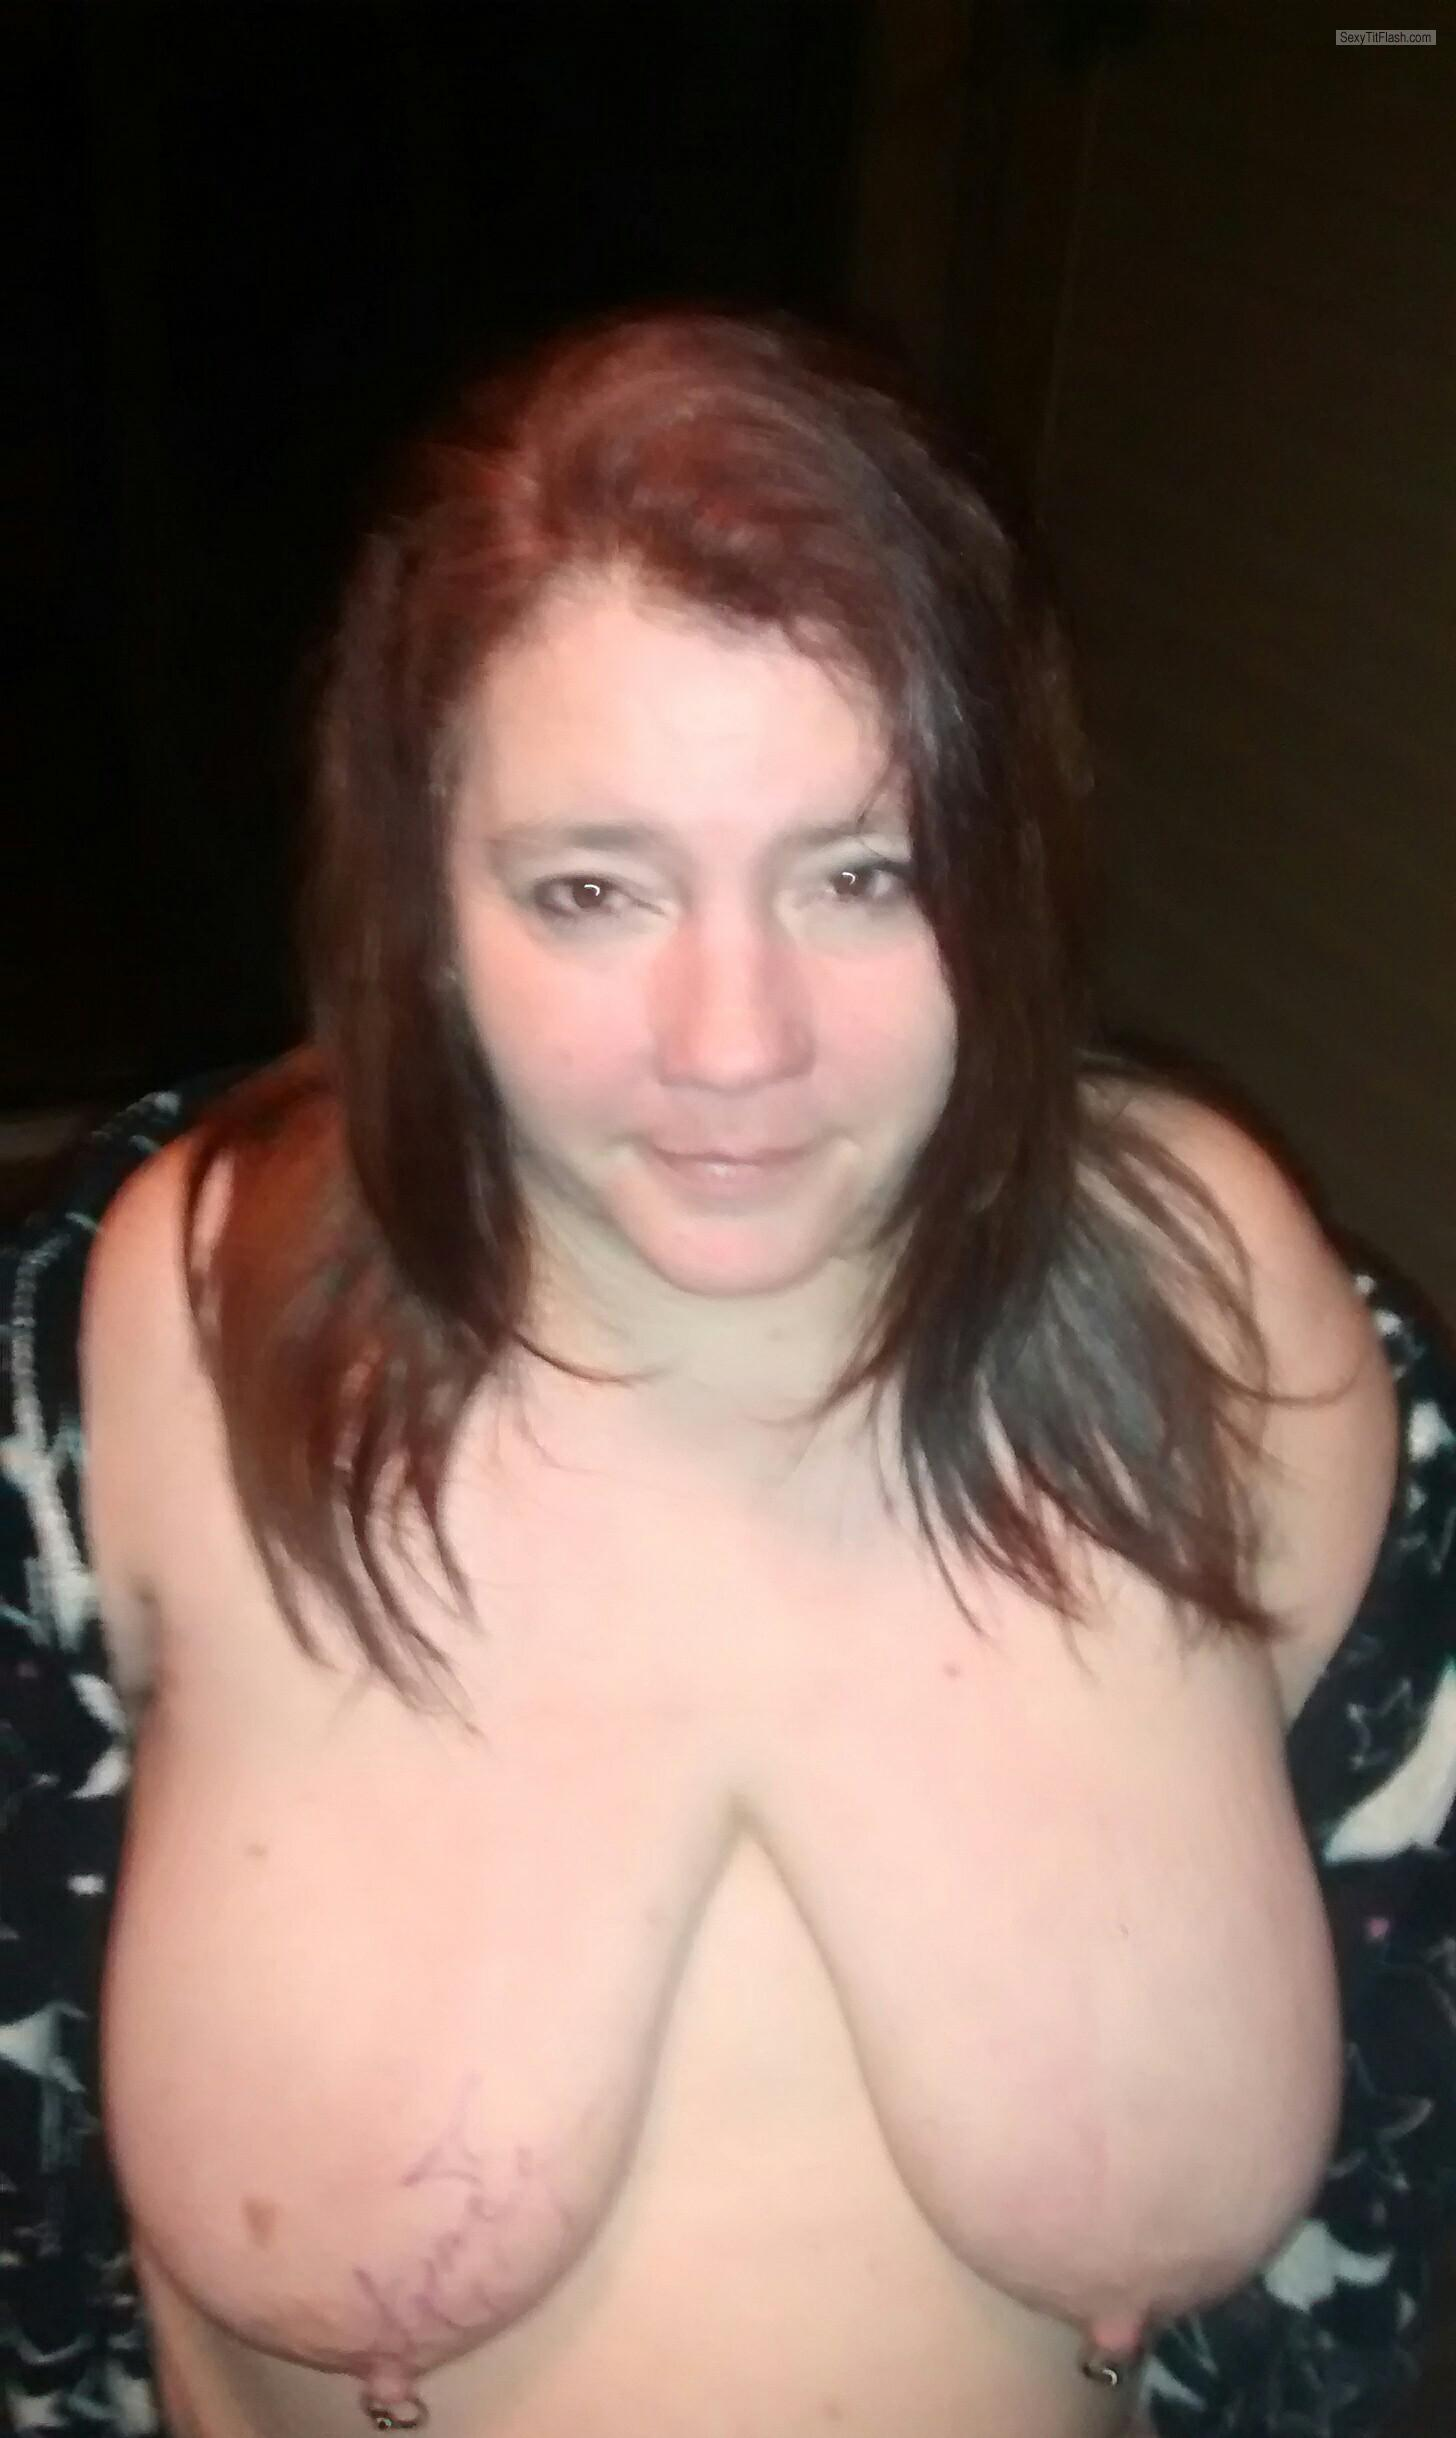 Very big Tits Of My Wife Topless Marlboronwench